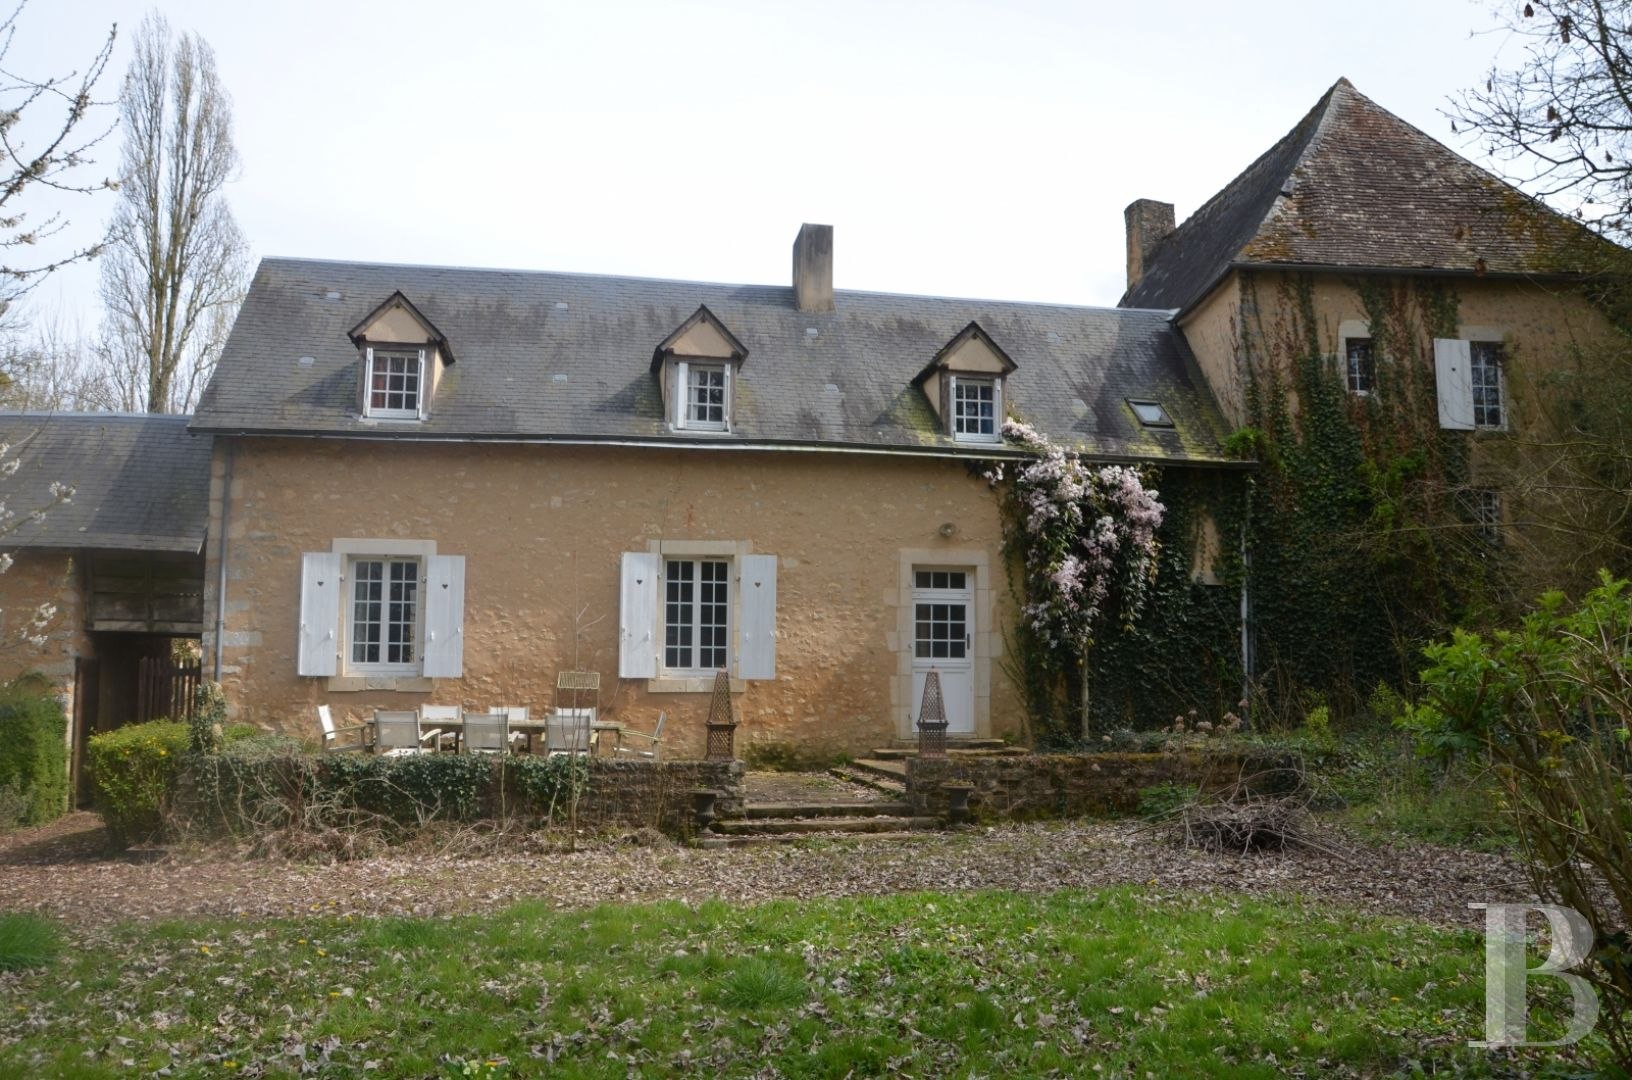 France mansions for sale pays de loire manors equestrian - 7 zoom